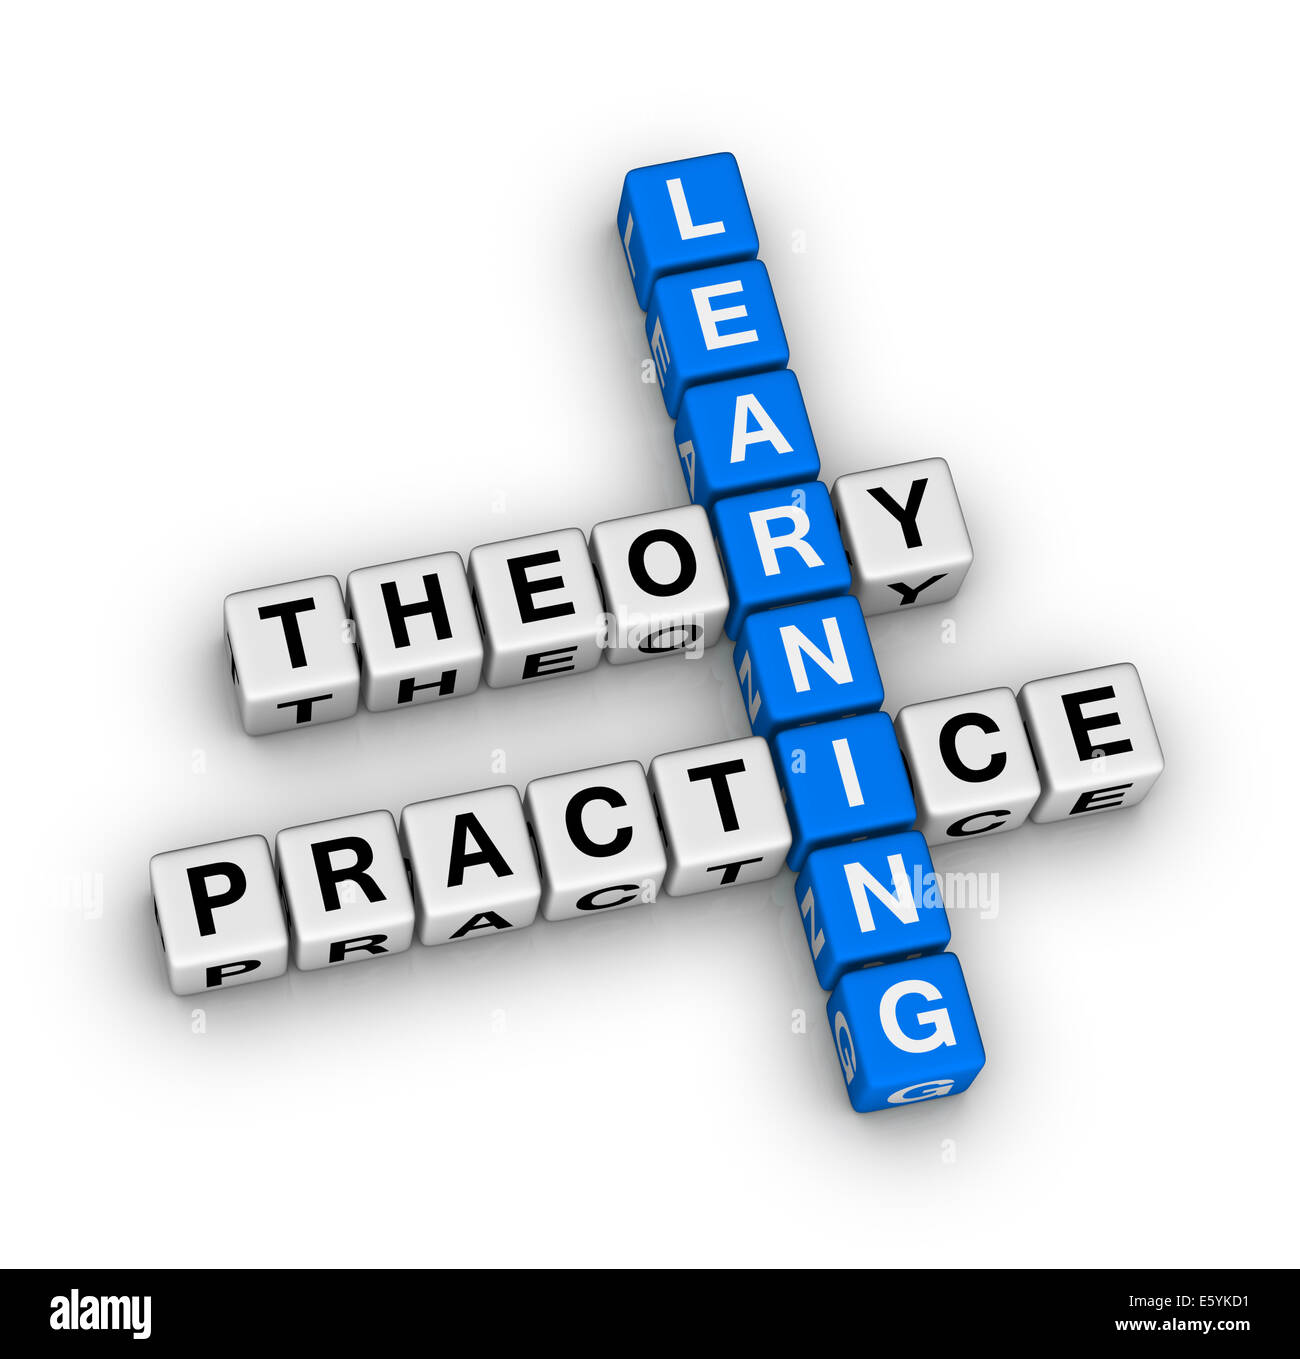 learning - theory and practice crossword puzzle - Stock Image